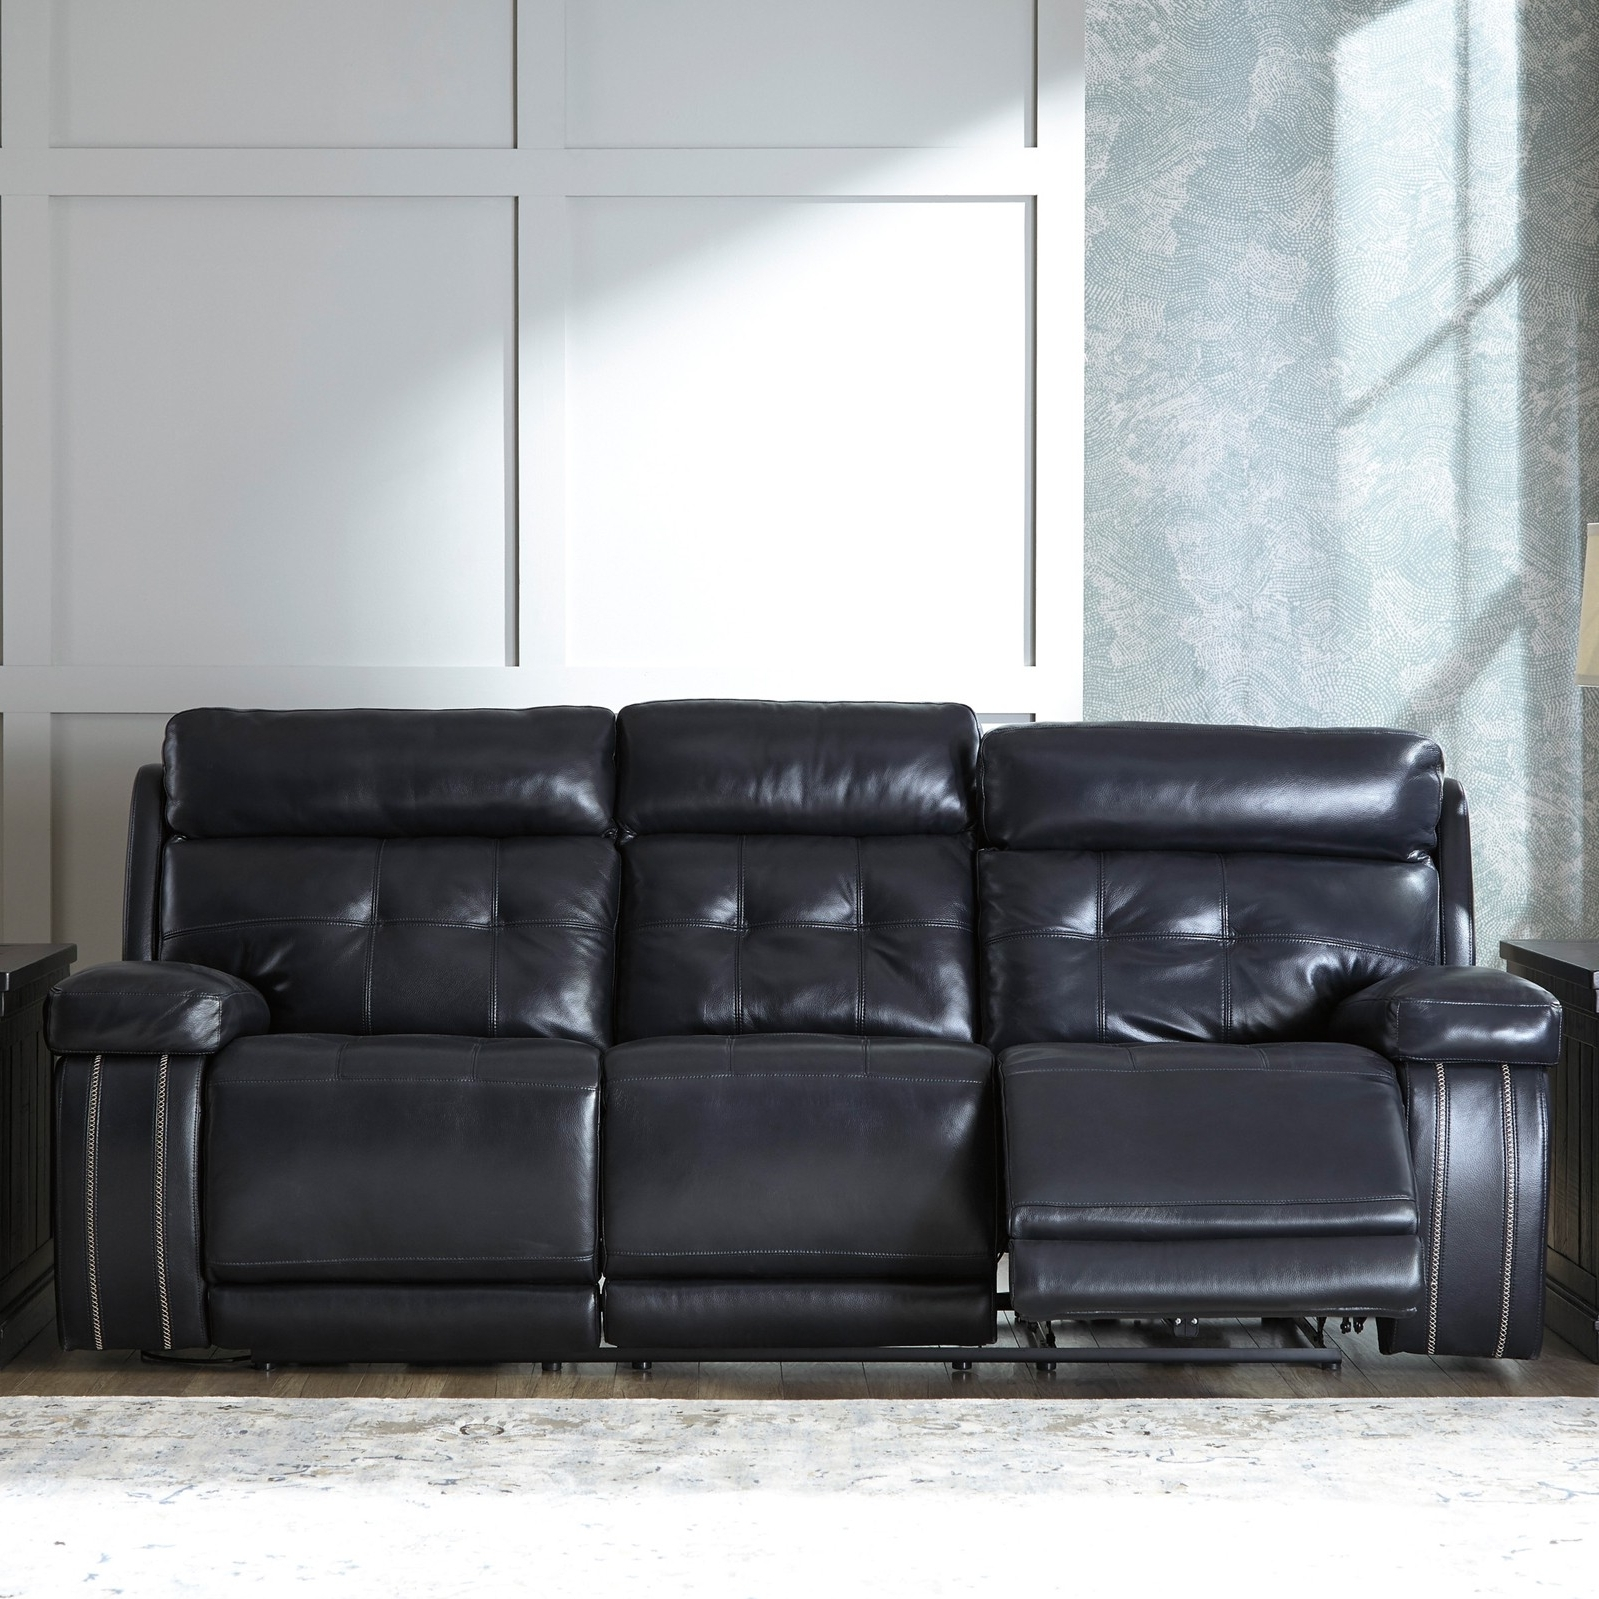 Graford Navy Power Recliner Sofa With Adjustable Headrest For Regarding Most Current Recliner Sofas (View 5 of 17)